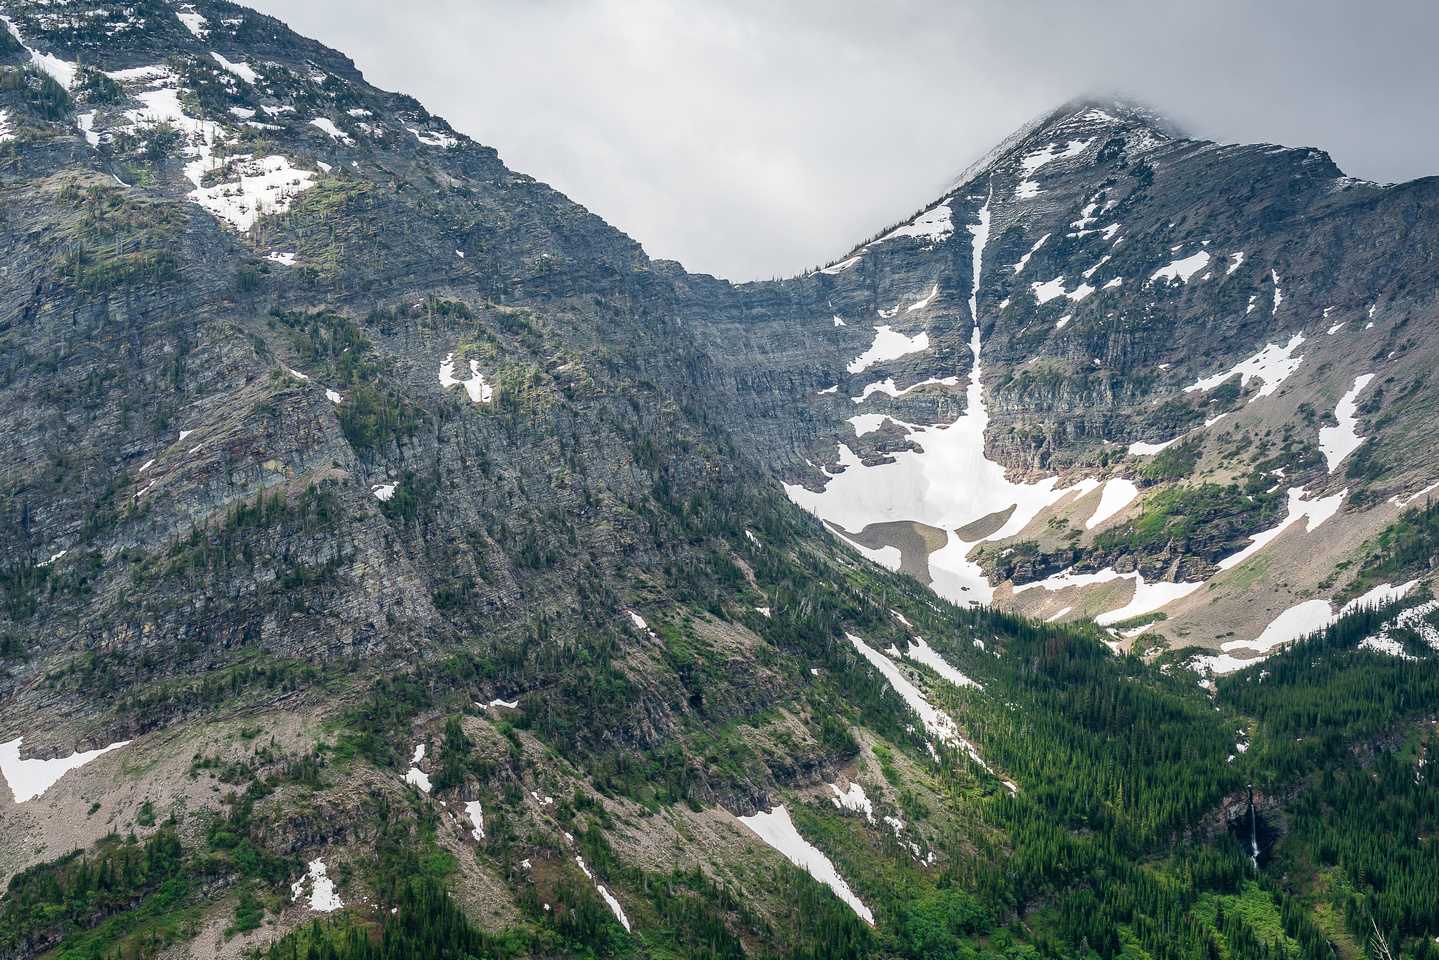 A waterfall coming off Middle Kootenay Mountain.